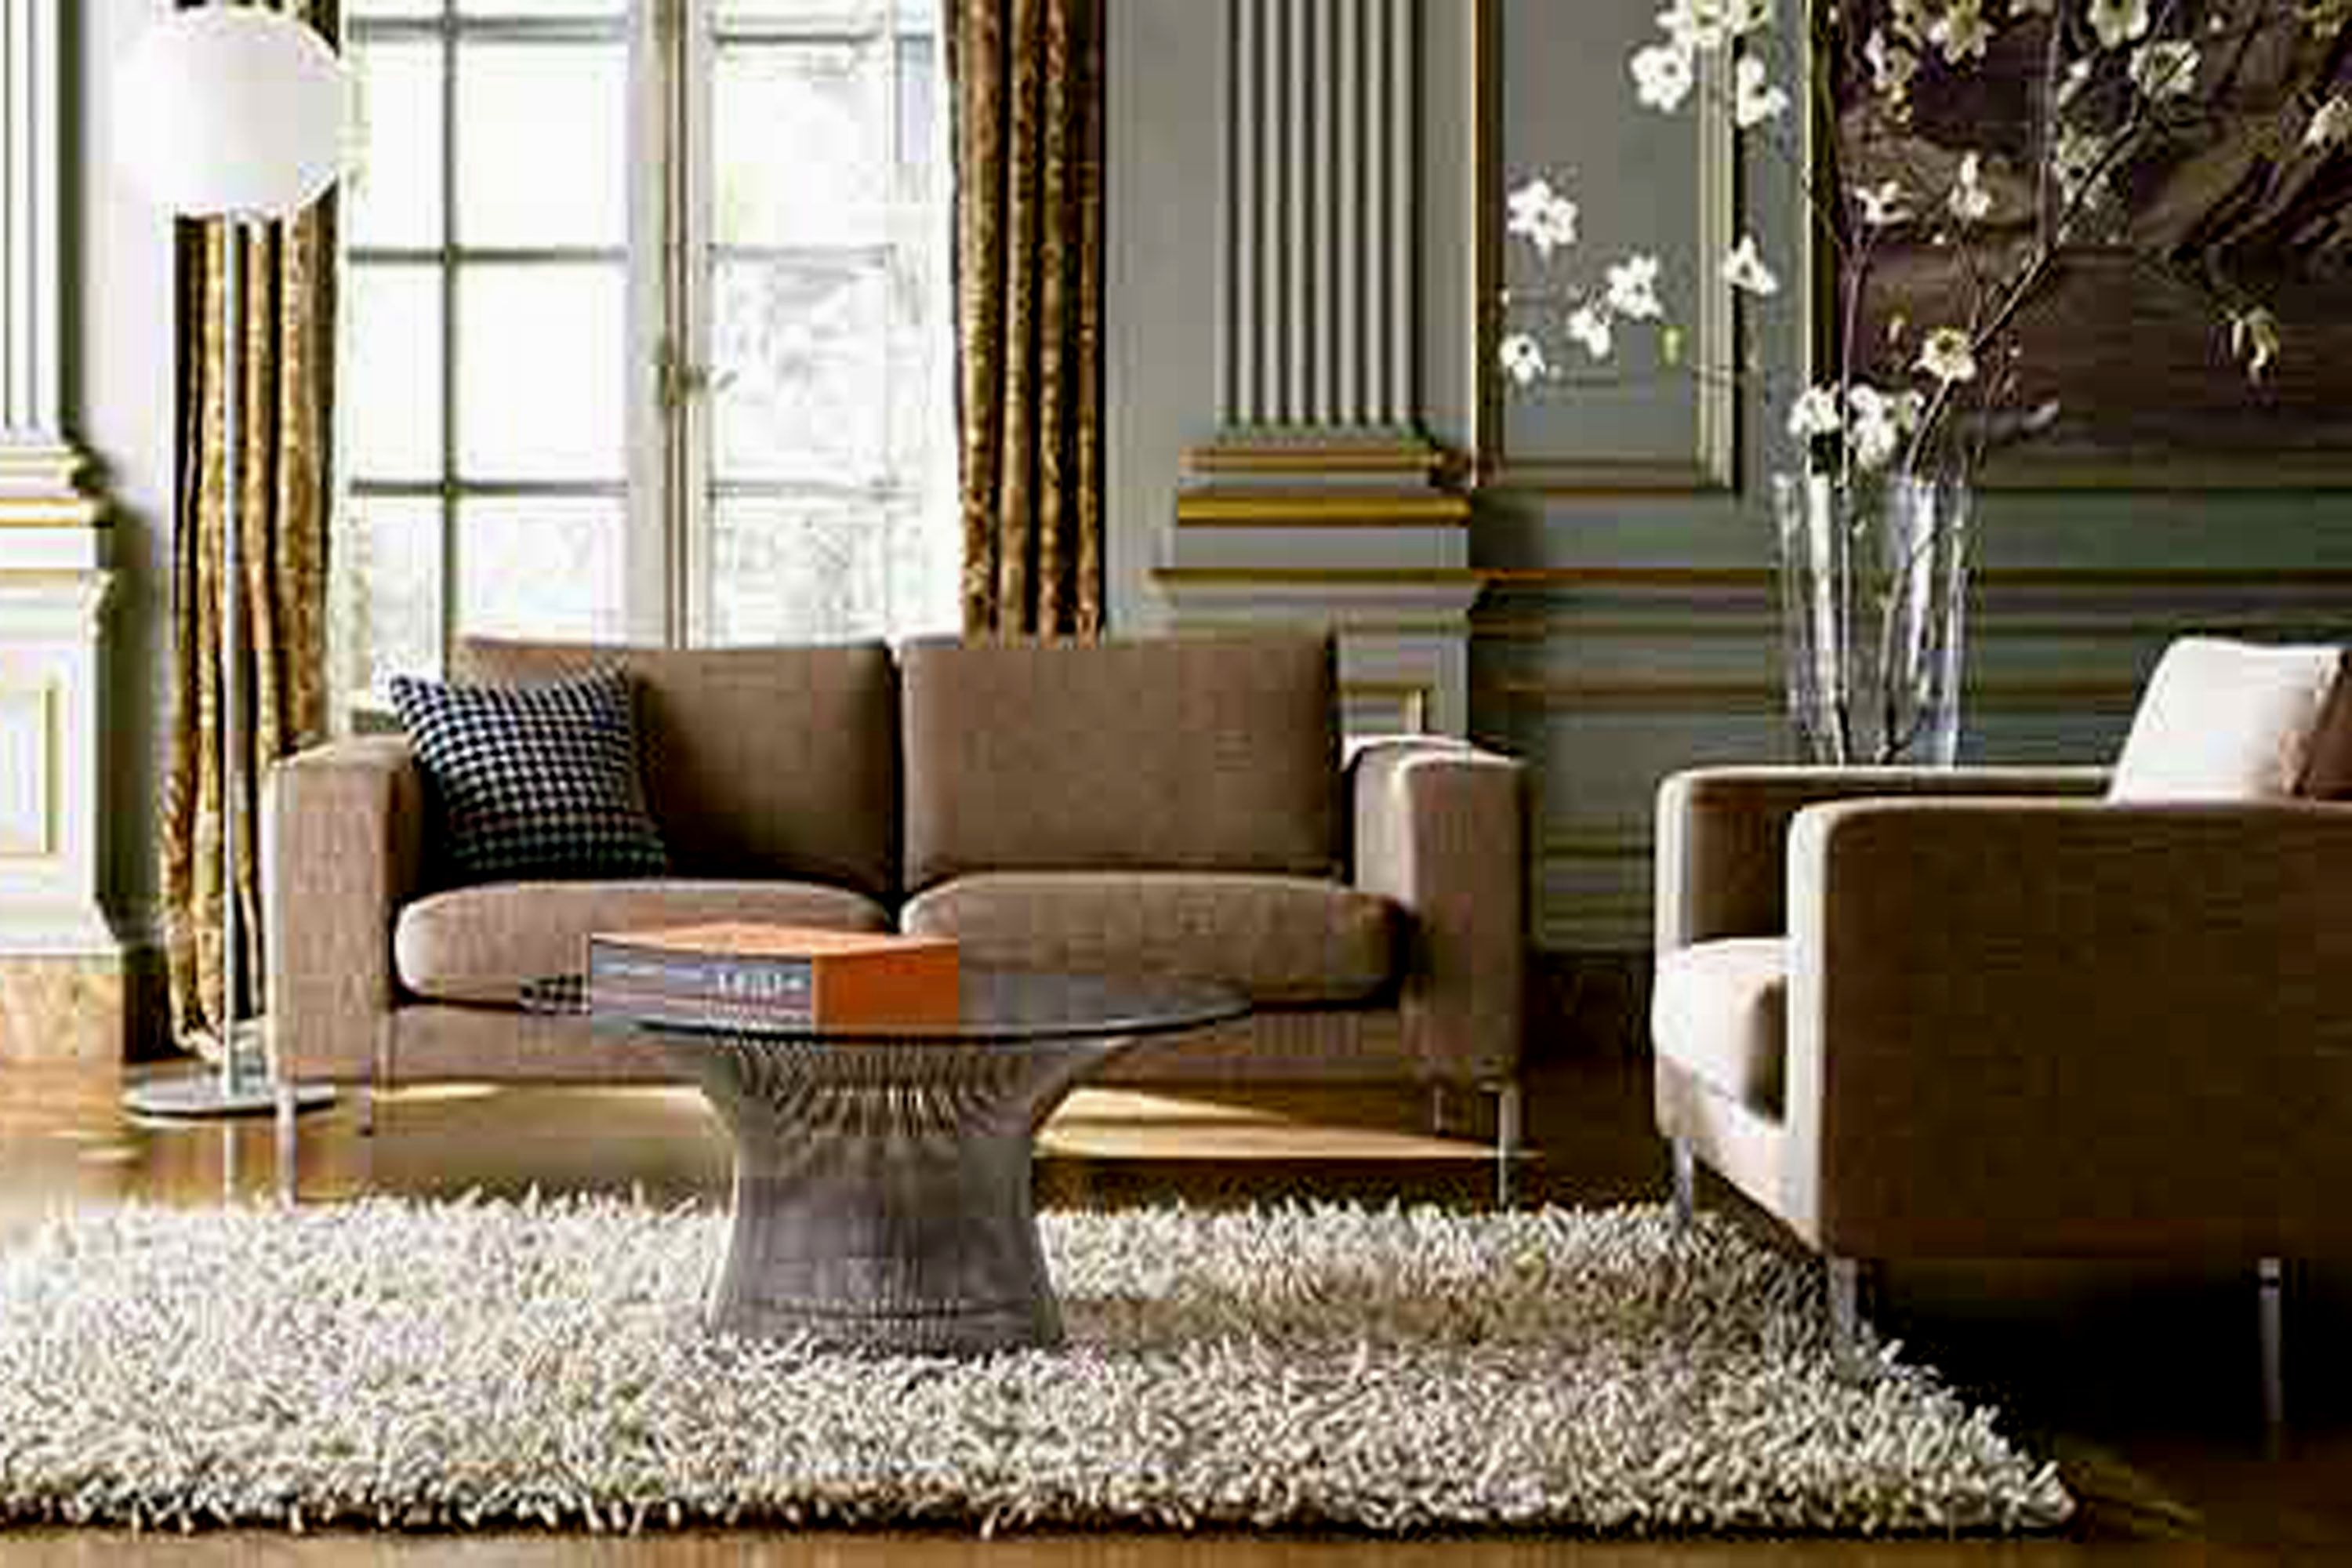 superb sofas for sale cheap picture-Beautiful sofas for Sale Cheap Pattern